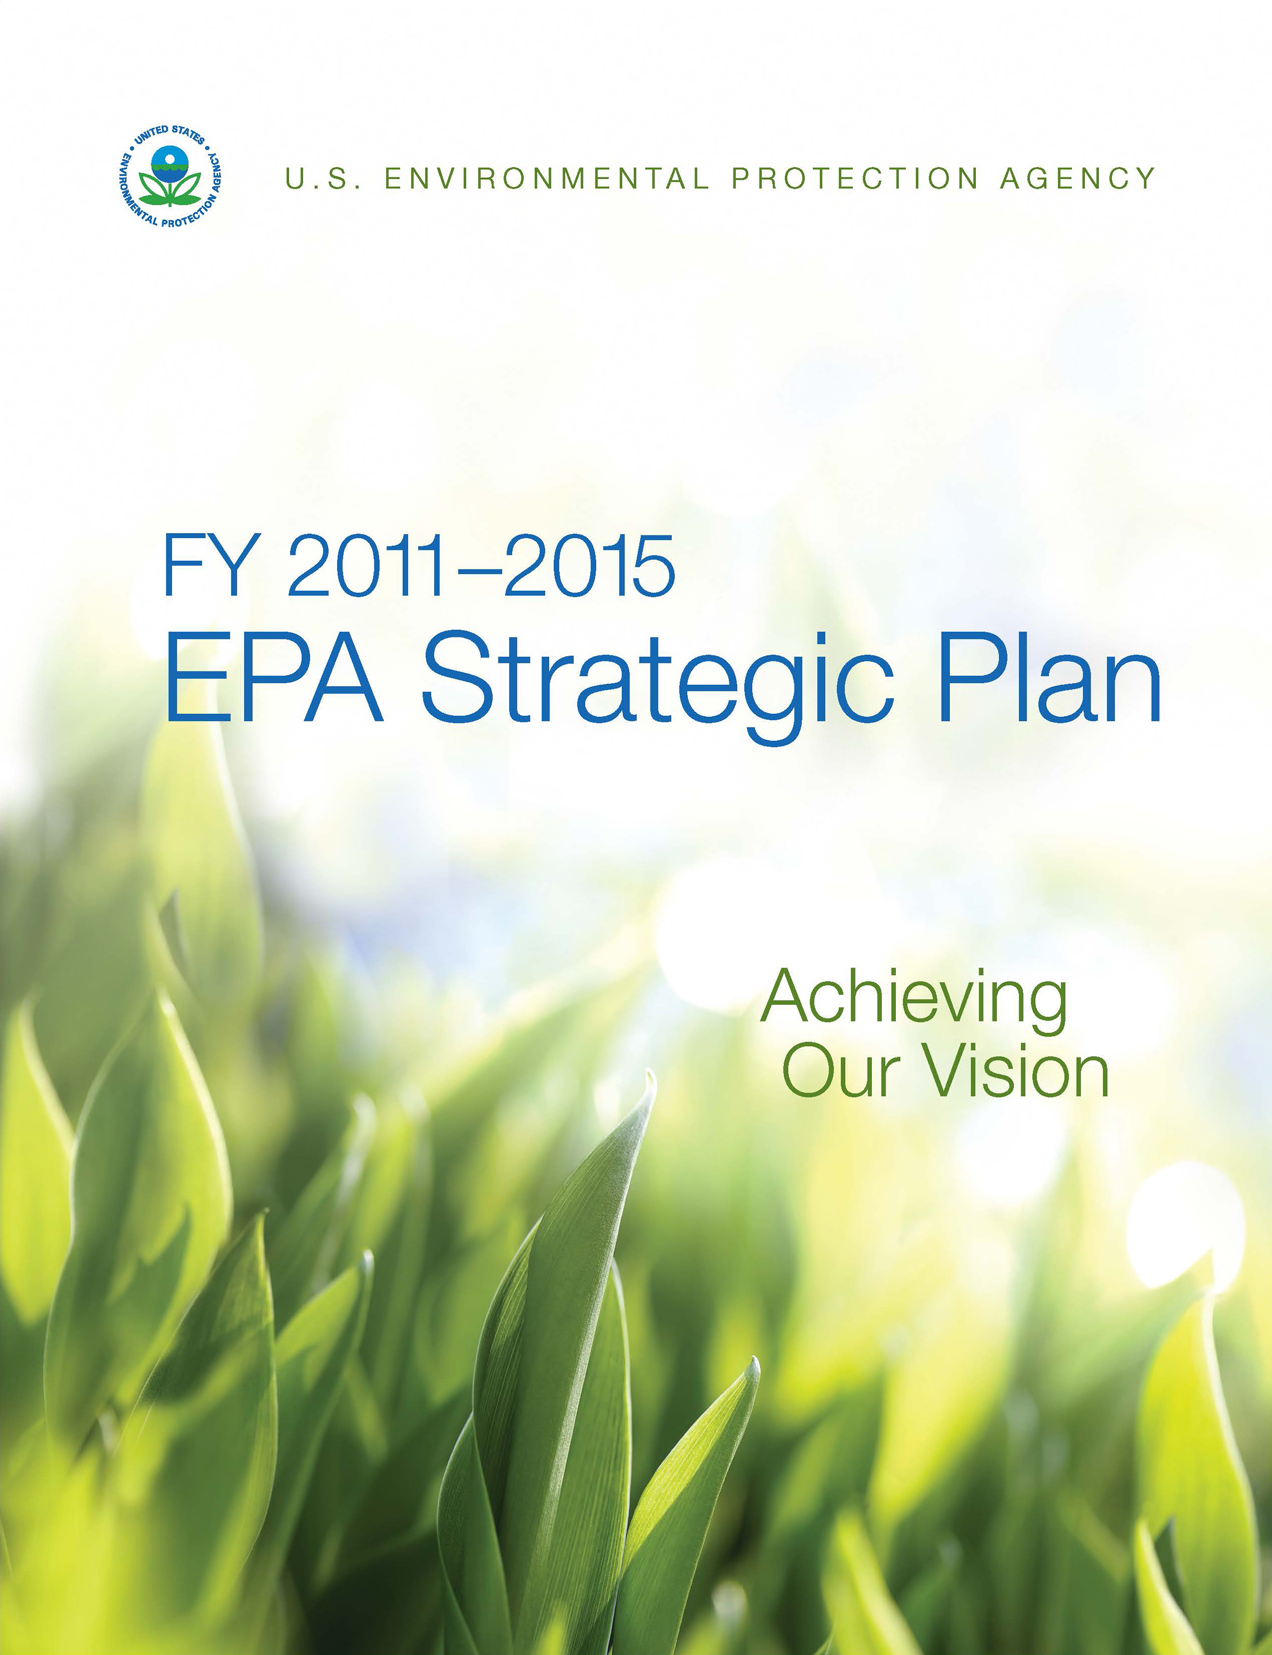 EPA Strategic Plan